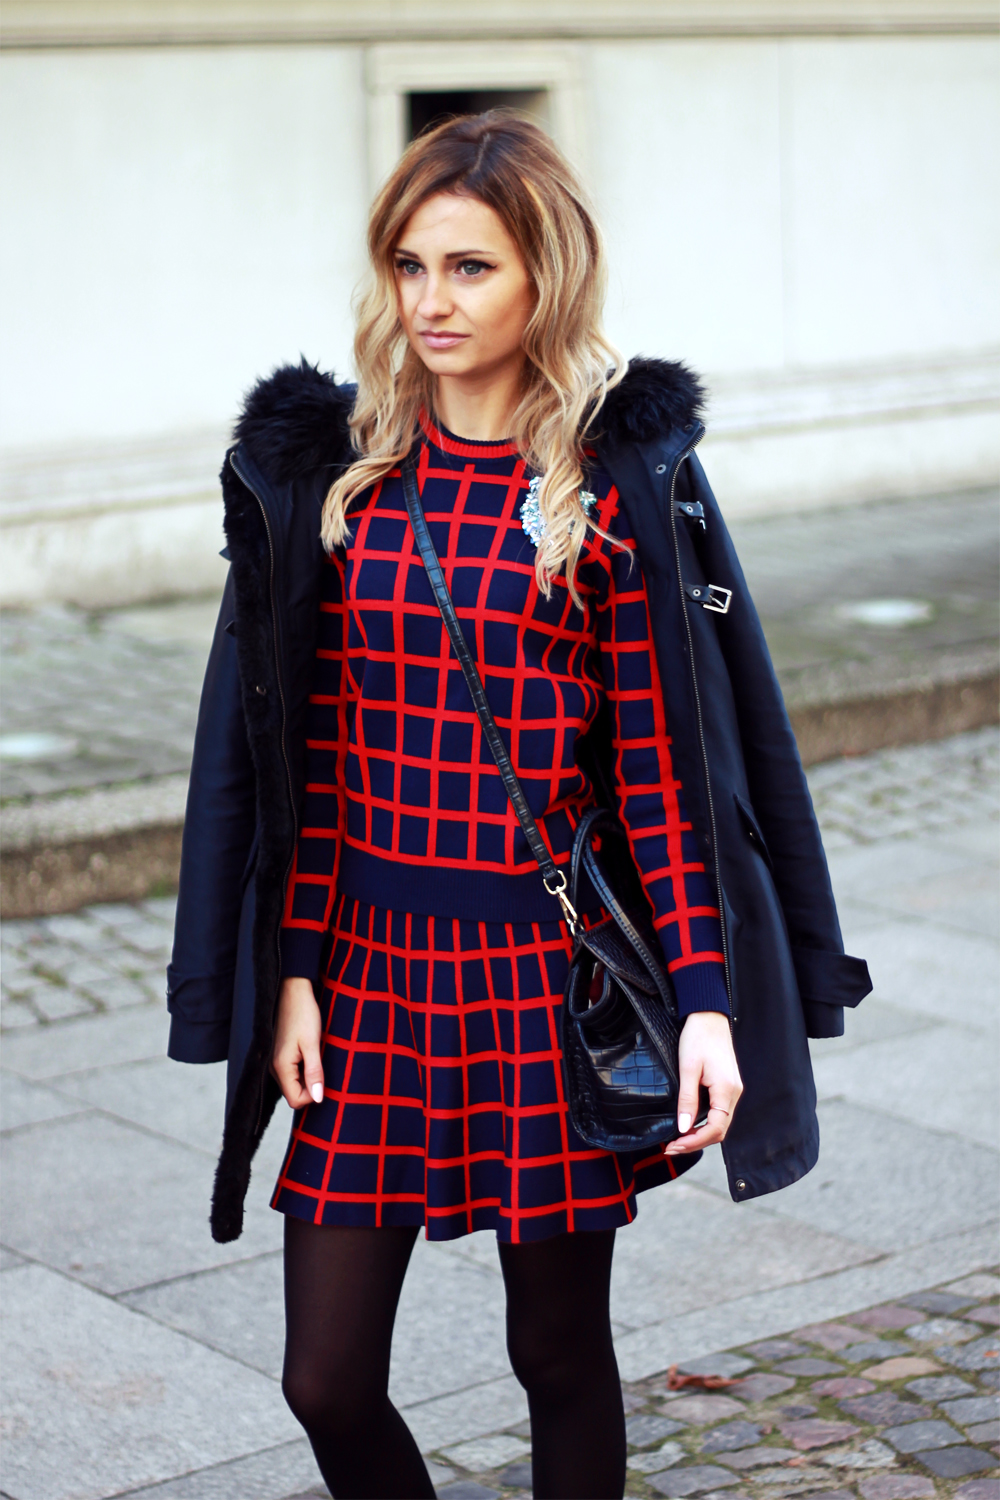 blonde fashion blogger girl look combo outfit street style tumblr ootd clothing